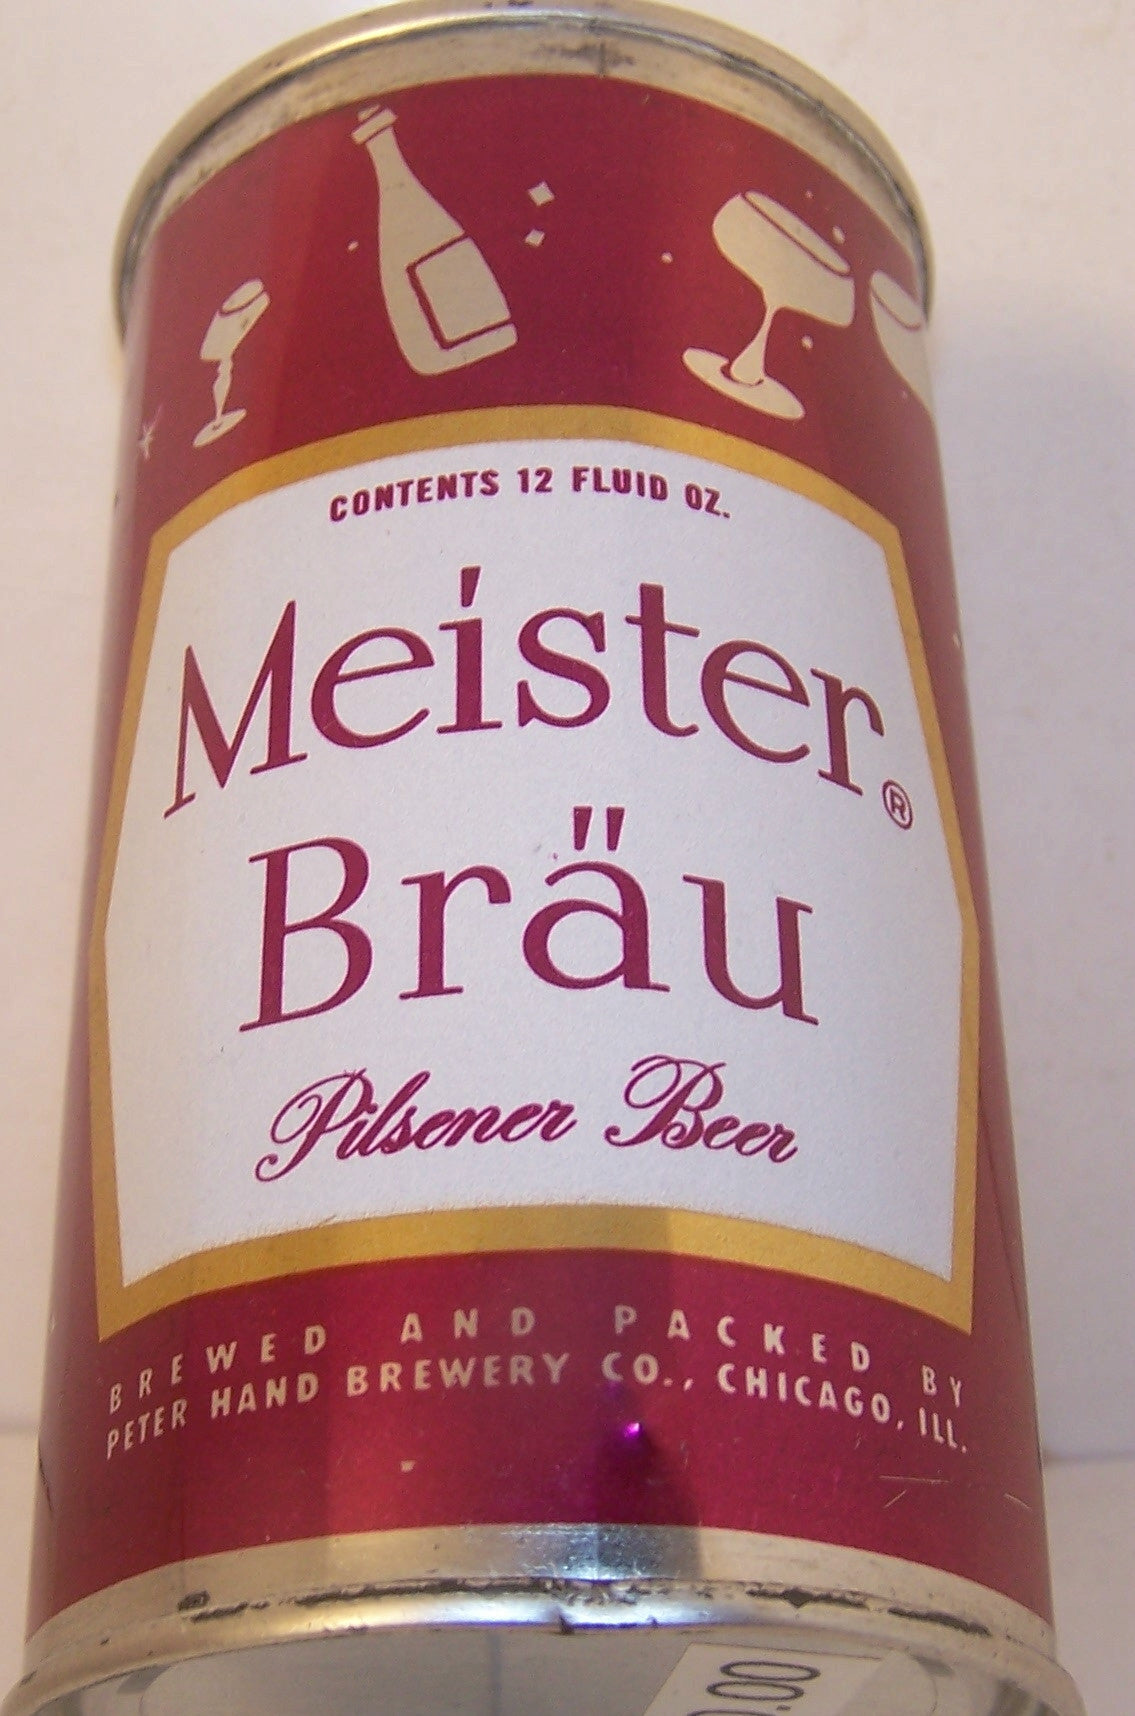 Meister Brau Pilsener Beer (Glasses and Bottles) USBC 95-29, Gsold 6/18/16rade 1/1+